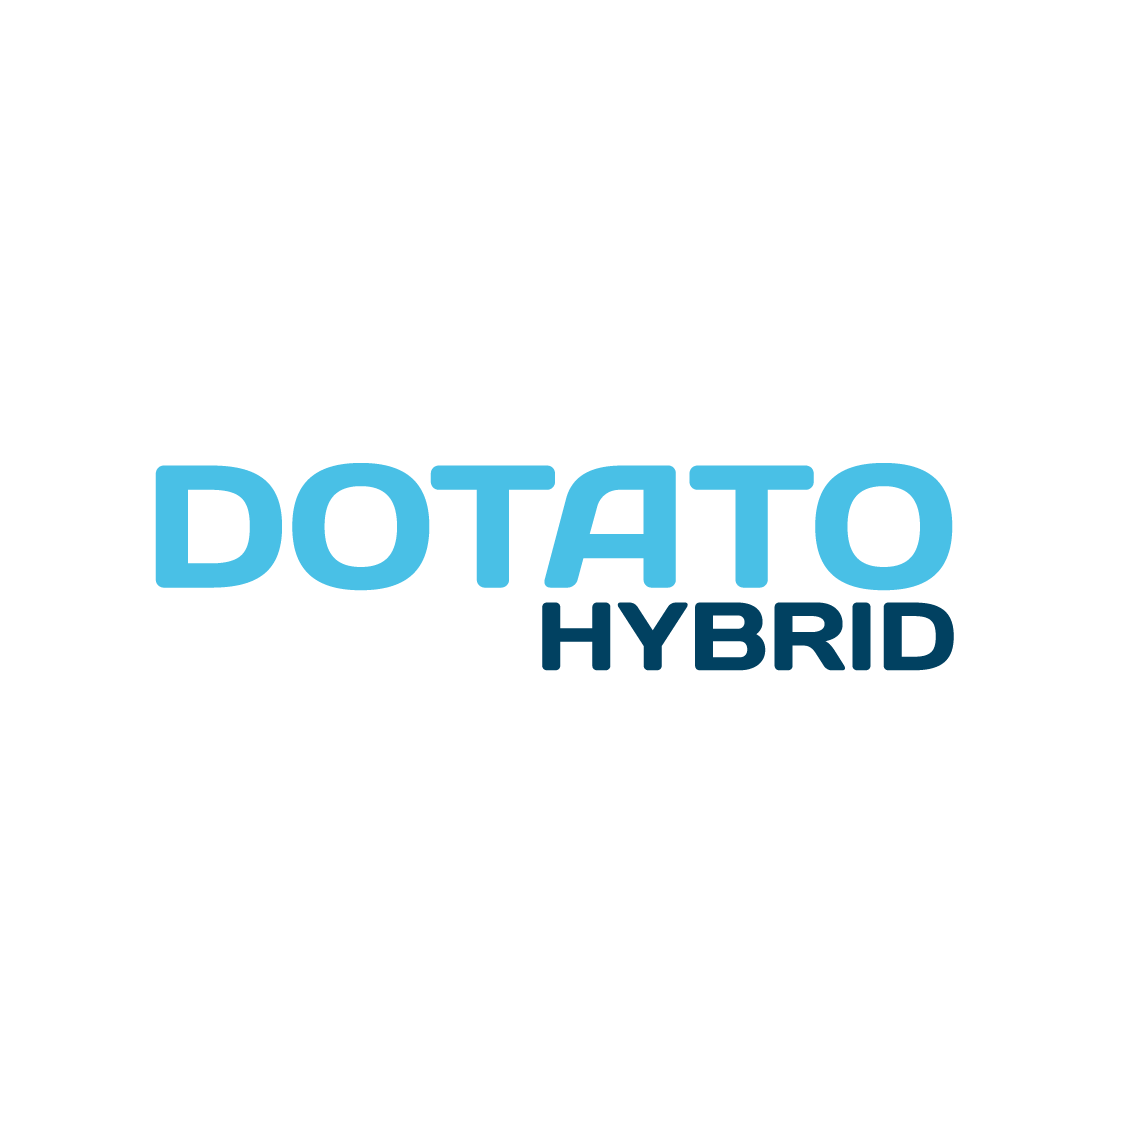 Dotato Hybrid - Travel Booking System